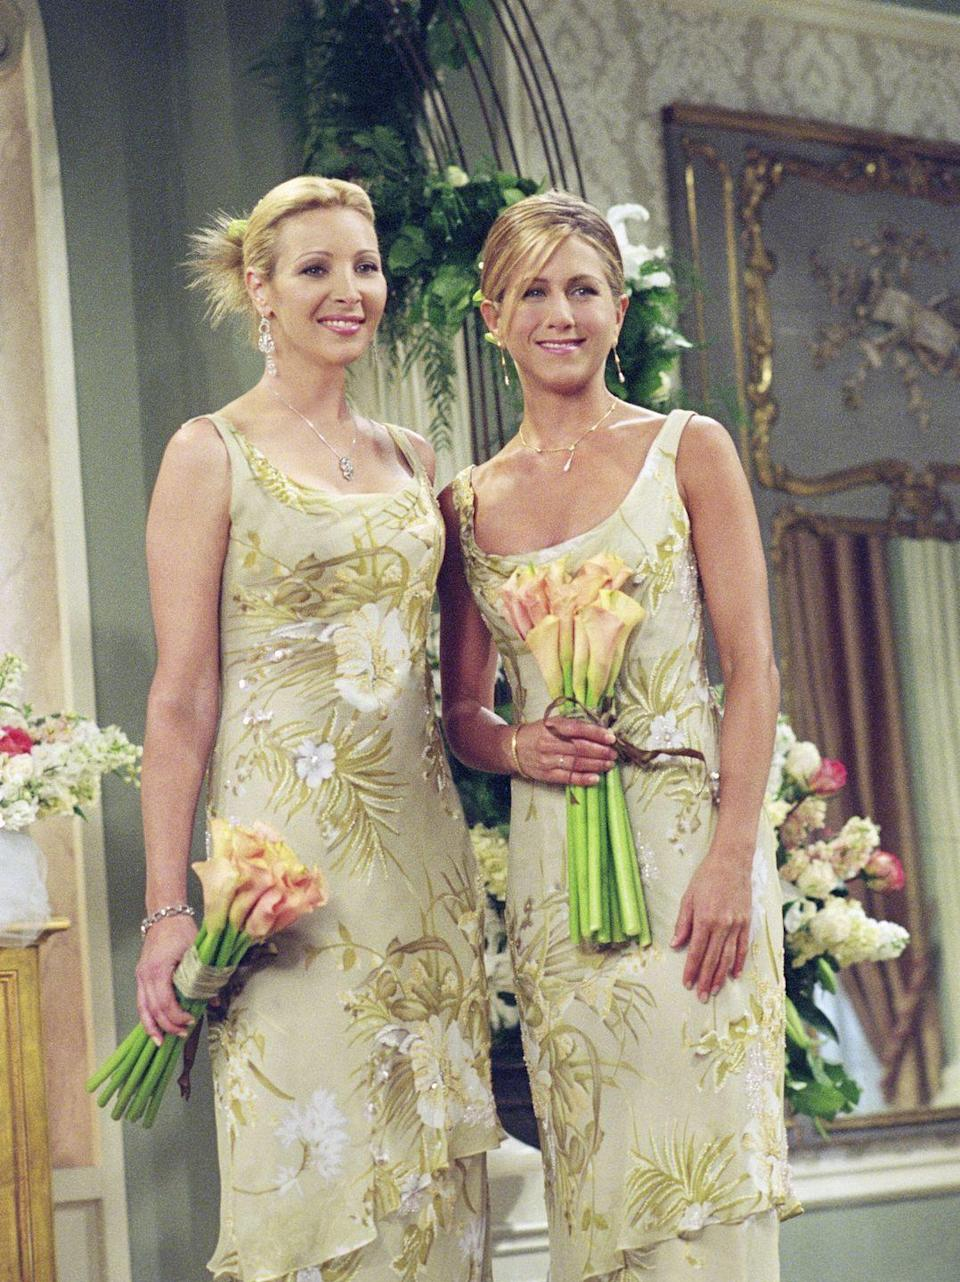 <p>Not only did Phoebe and Rachel look great as bridesmaids on <em>Friends</em>, but their sleeveless floral gowns are totally on trend for the moment. </p>